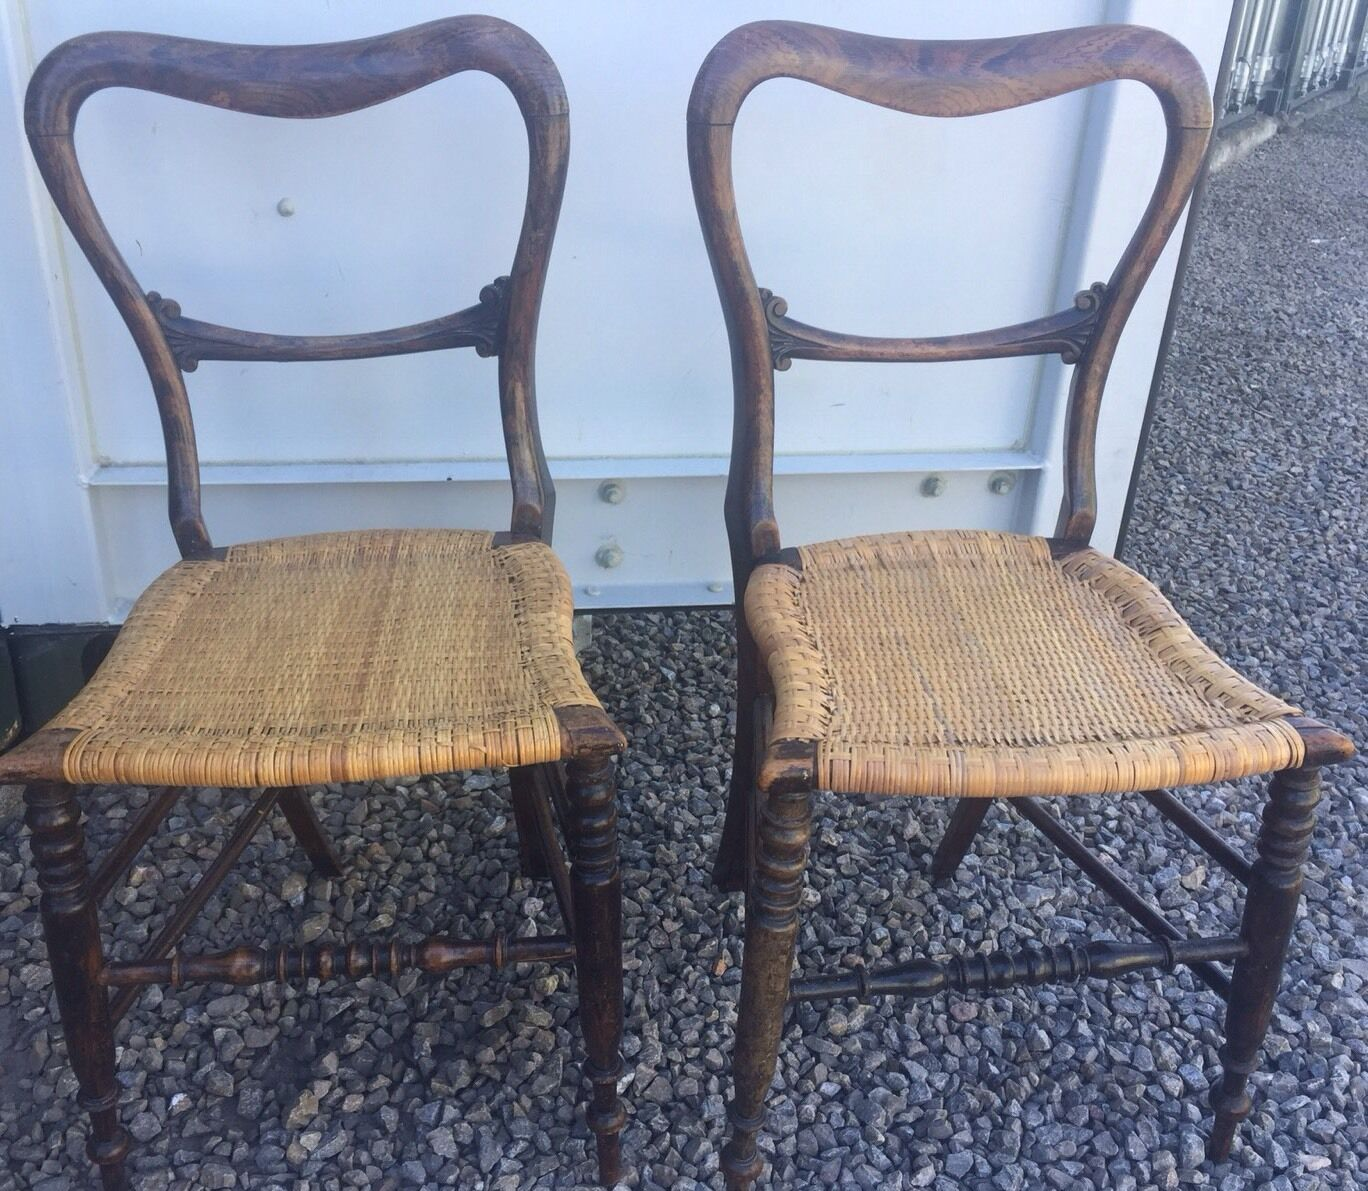 Vintage Pair Of Small Balloon Back Chairs With Rattan Seats Bedroom Chair